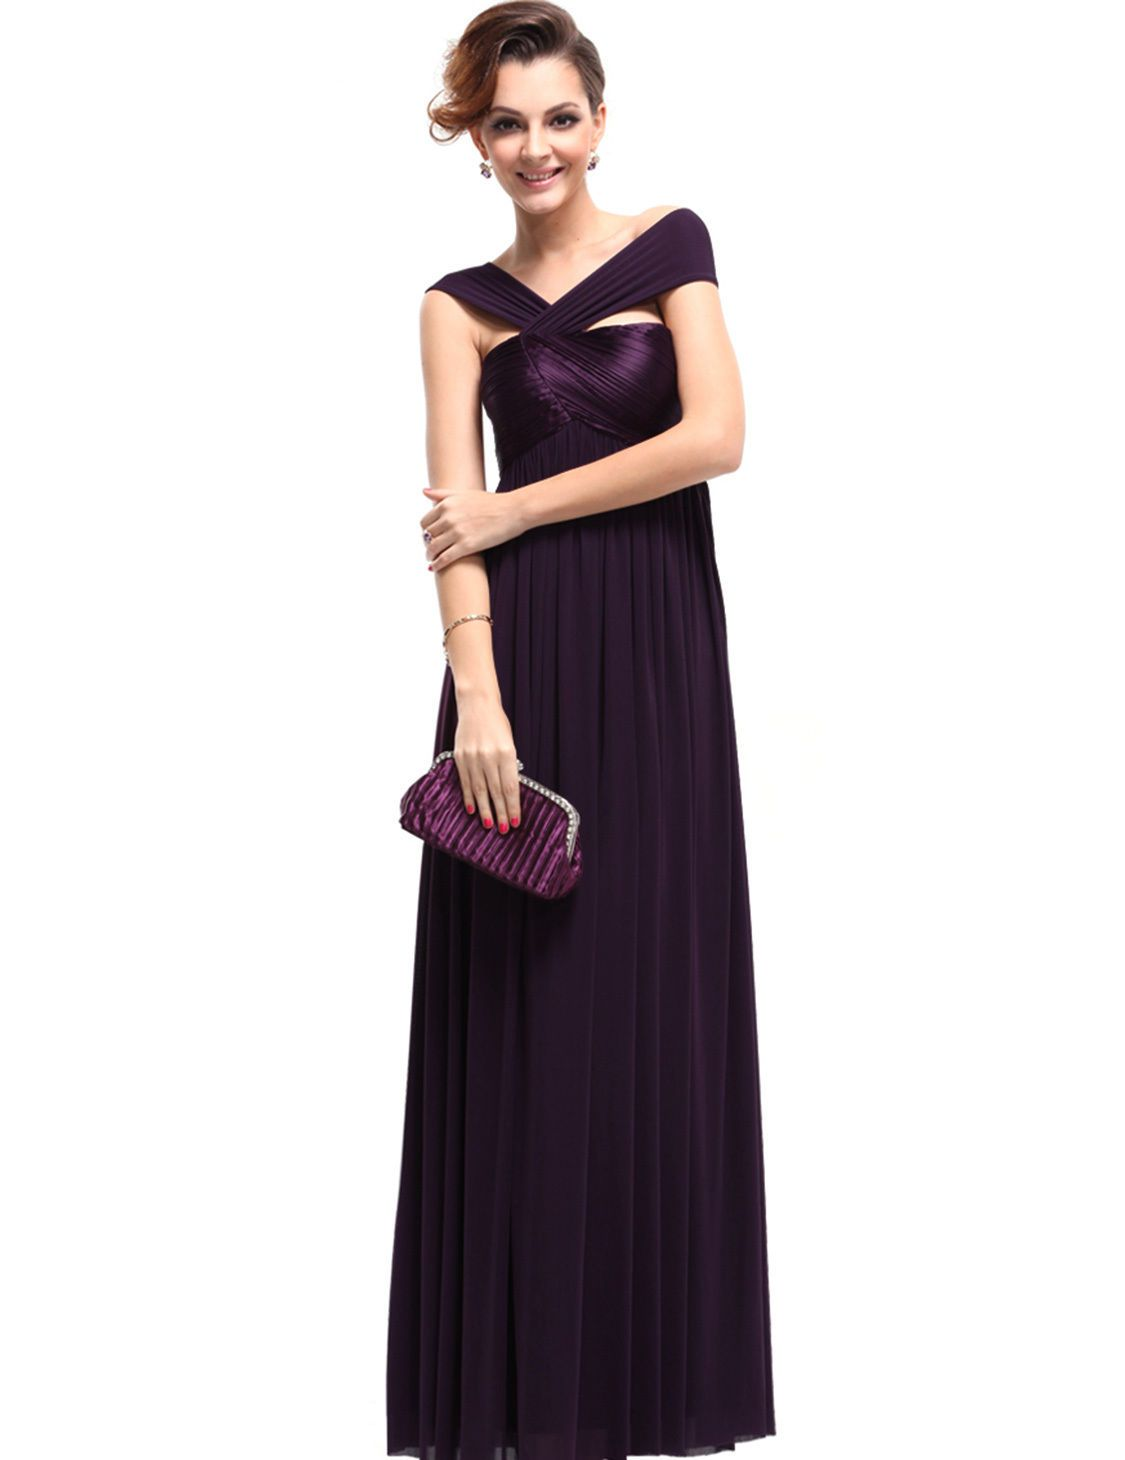 Awesome purple mother of the bride dresses pageant homecoming party